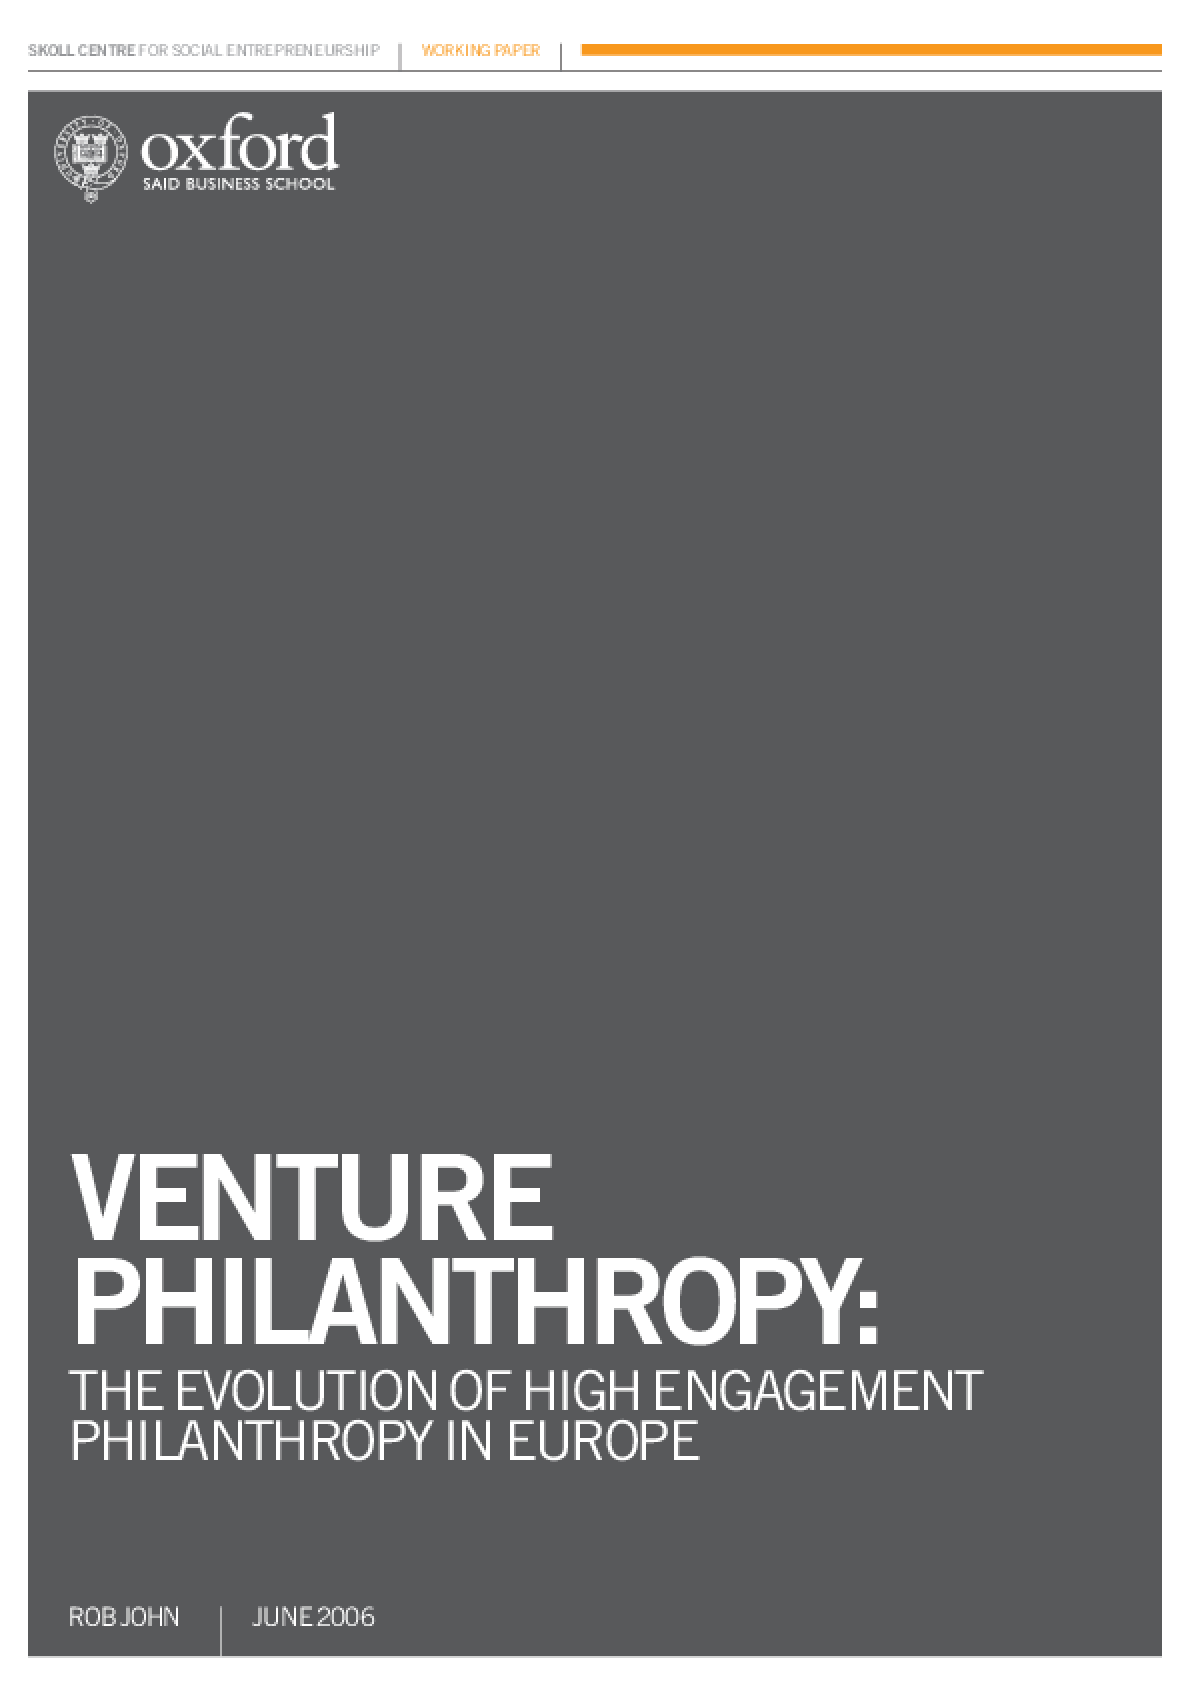 Venture Philanthropy- the Evolution of High Engagement Philanthropy in Europe.